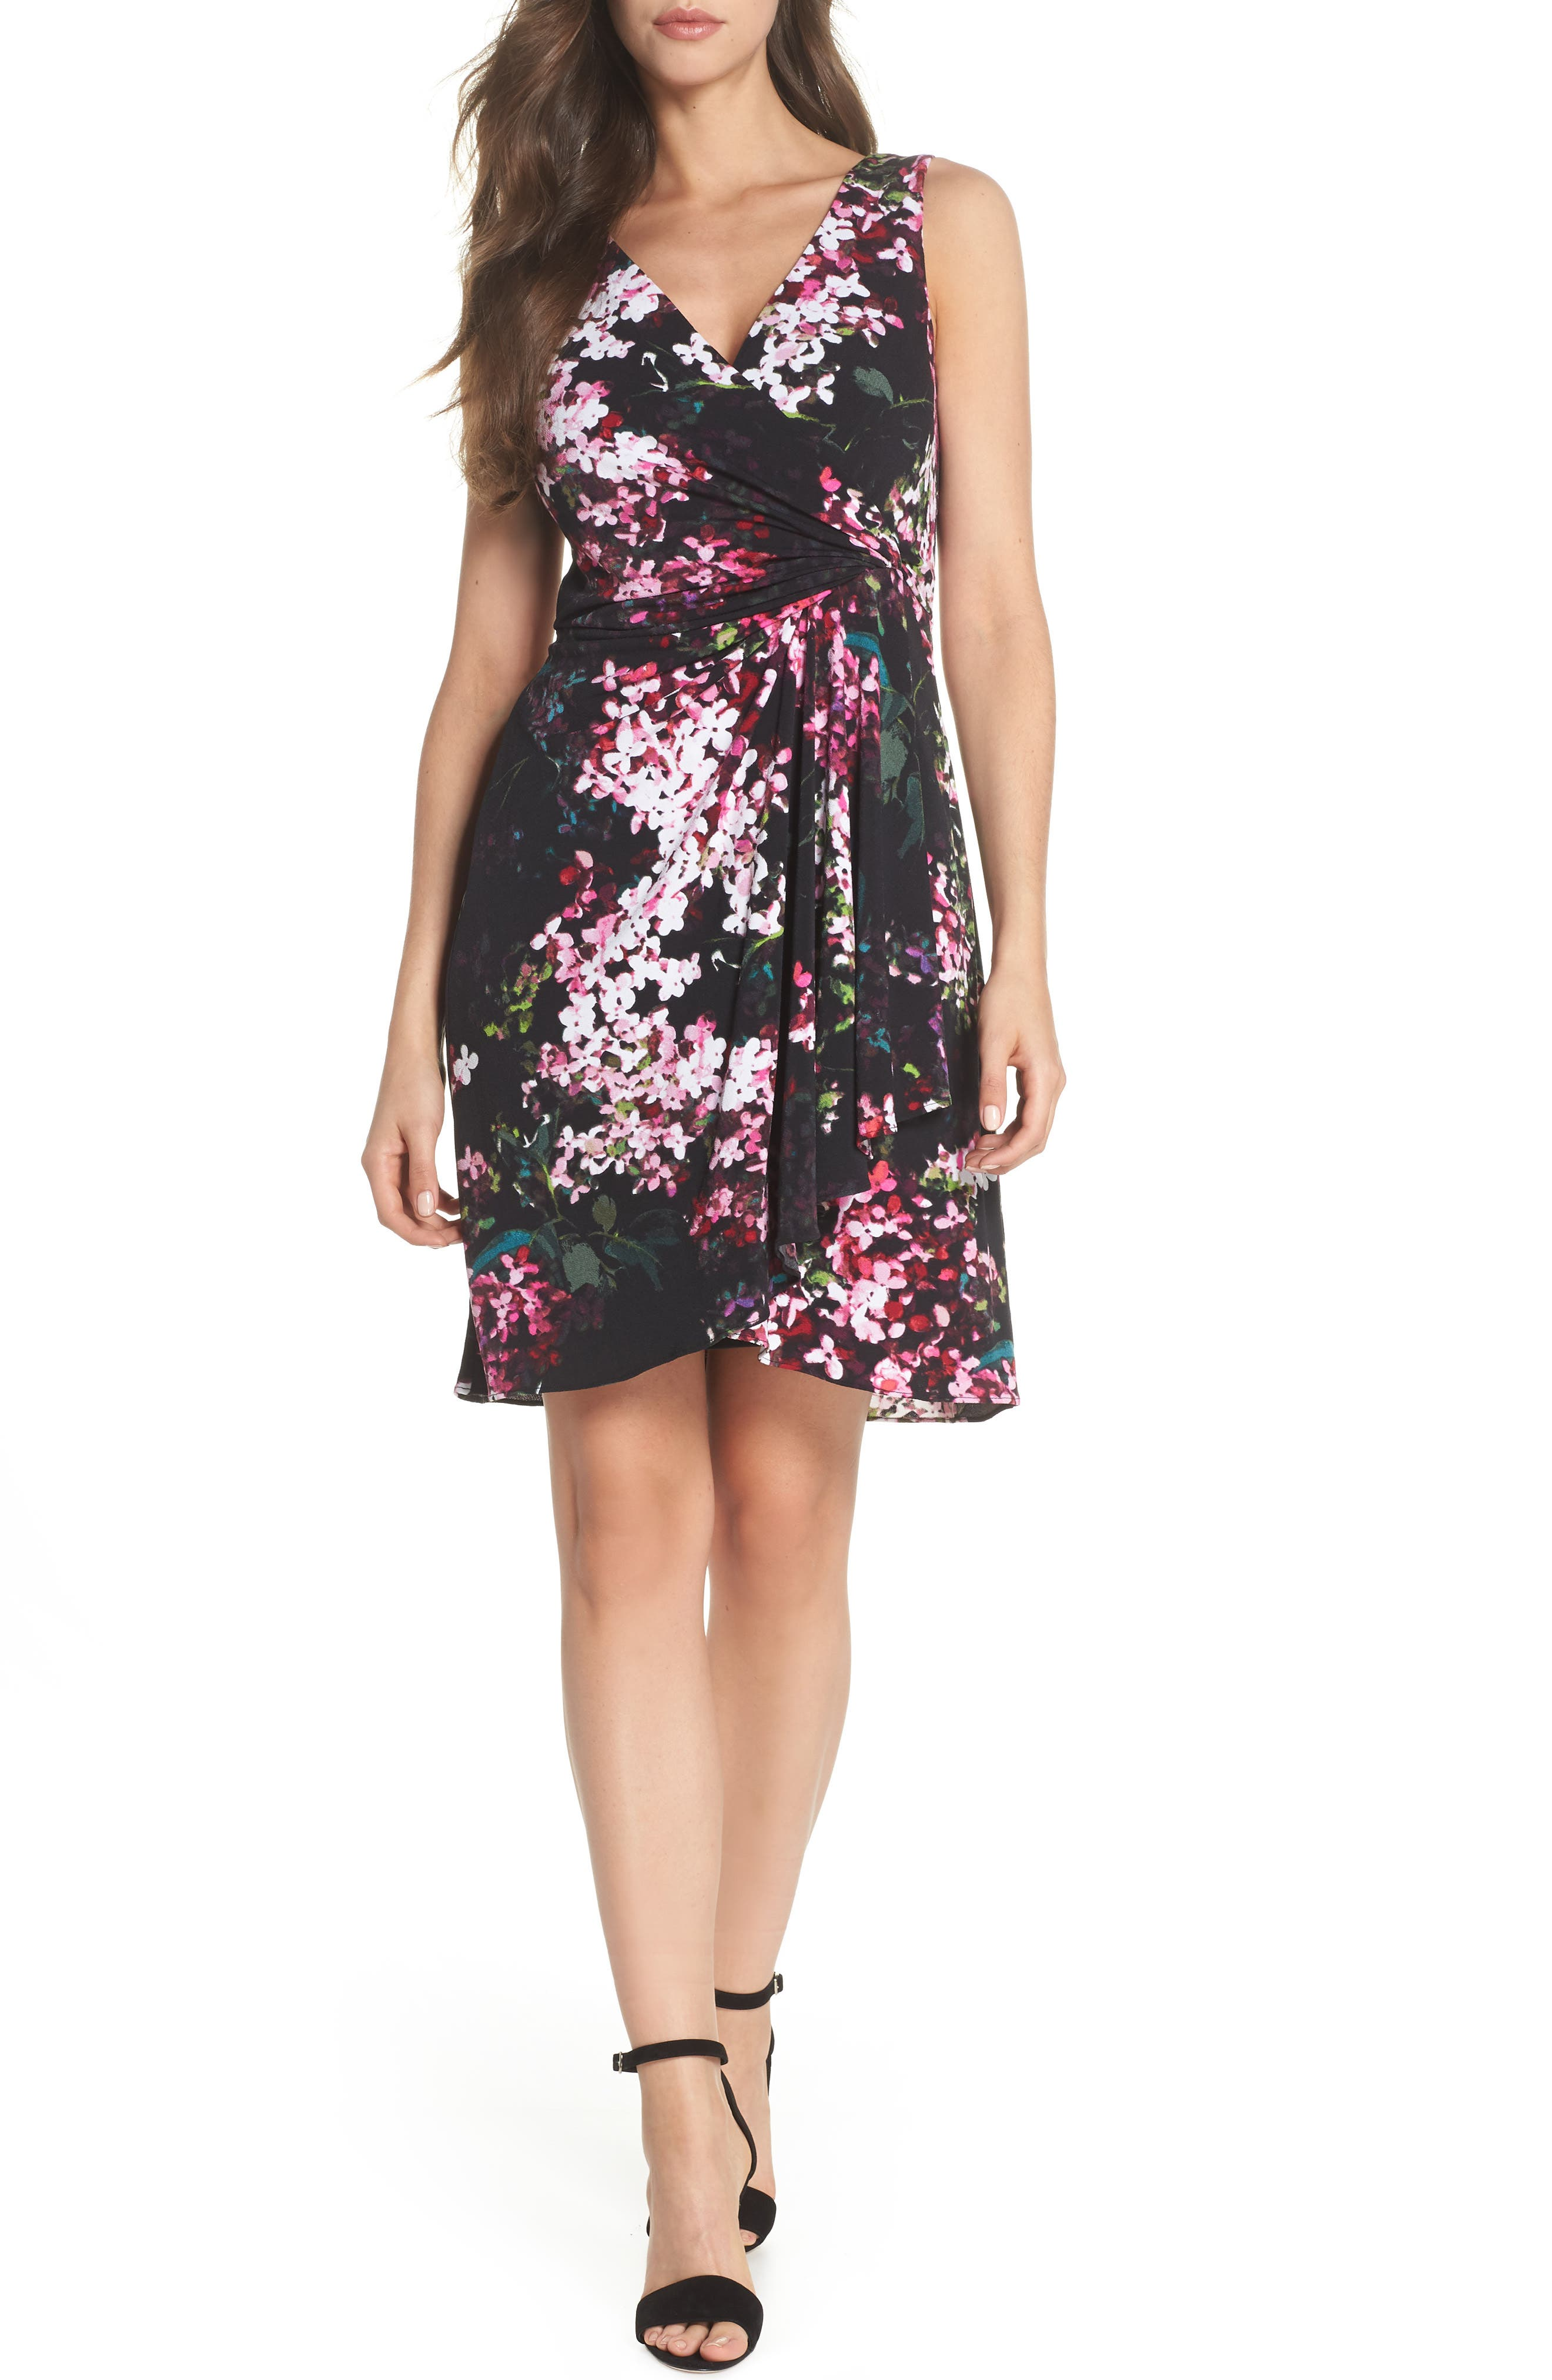 Alternate Image 1 Selected - Adrianna Papell Floral Print Twist Front Dress